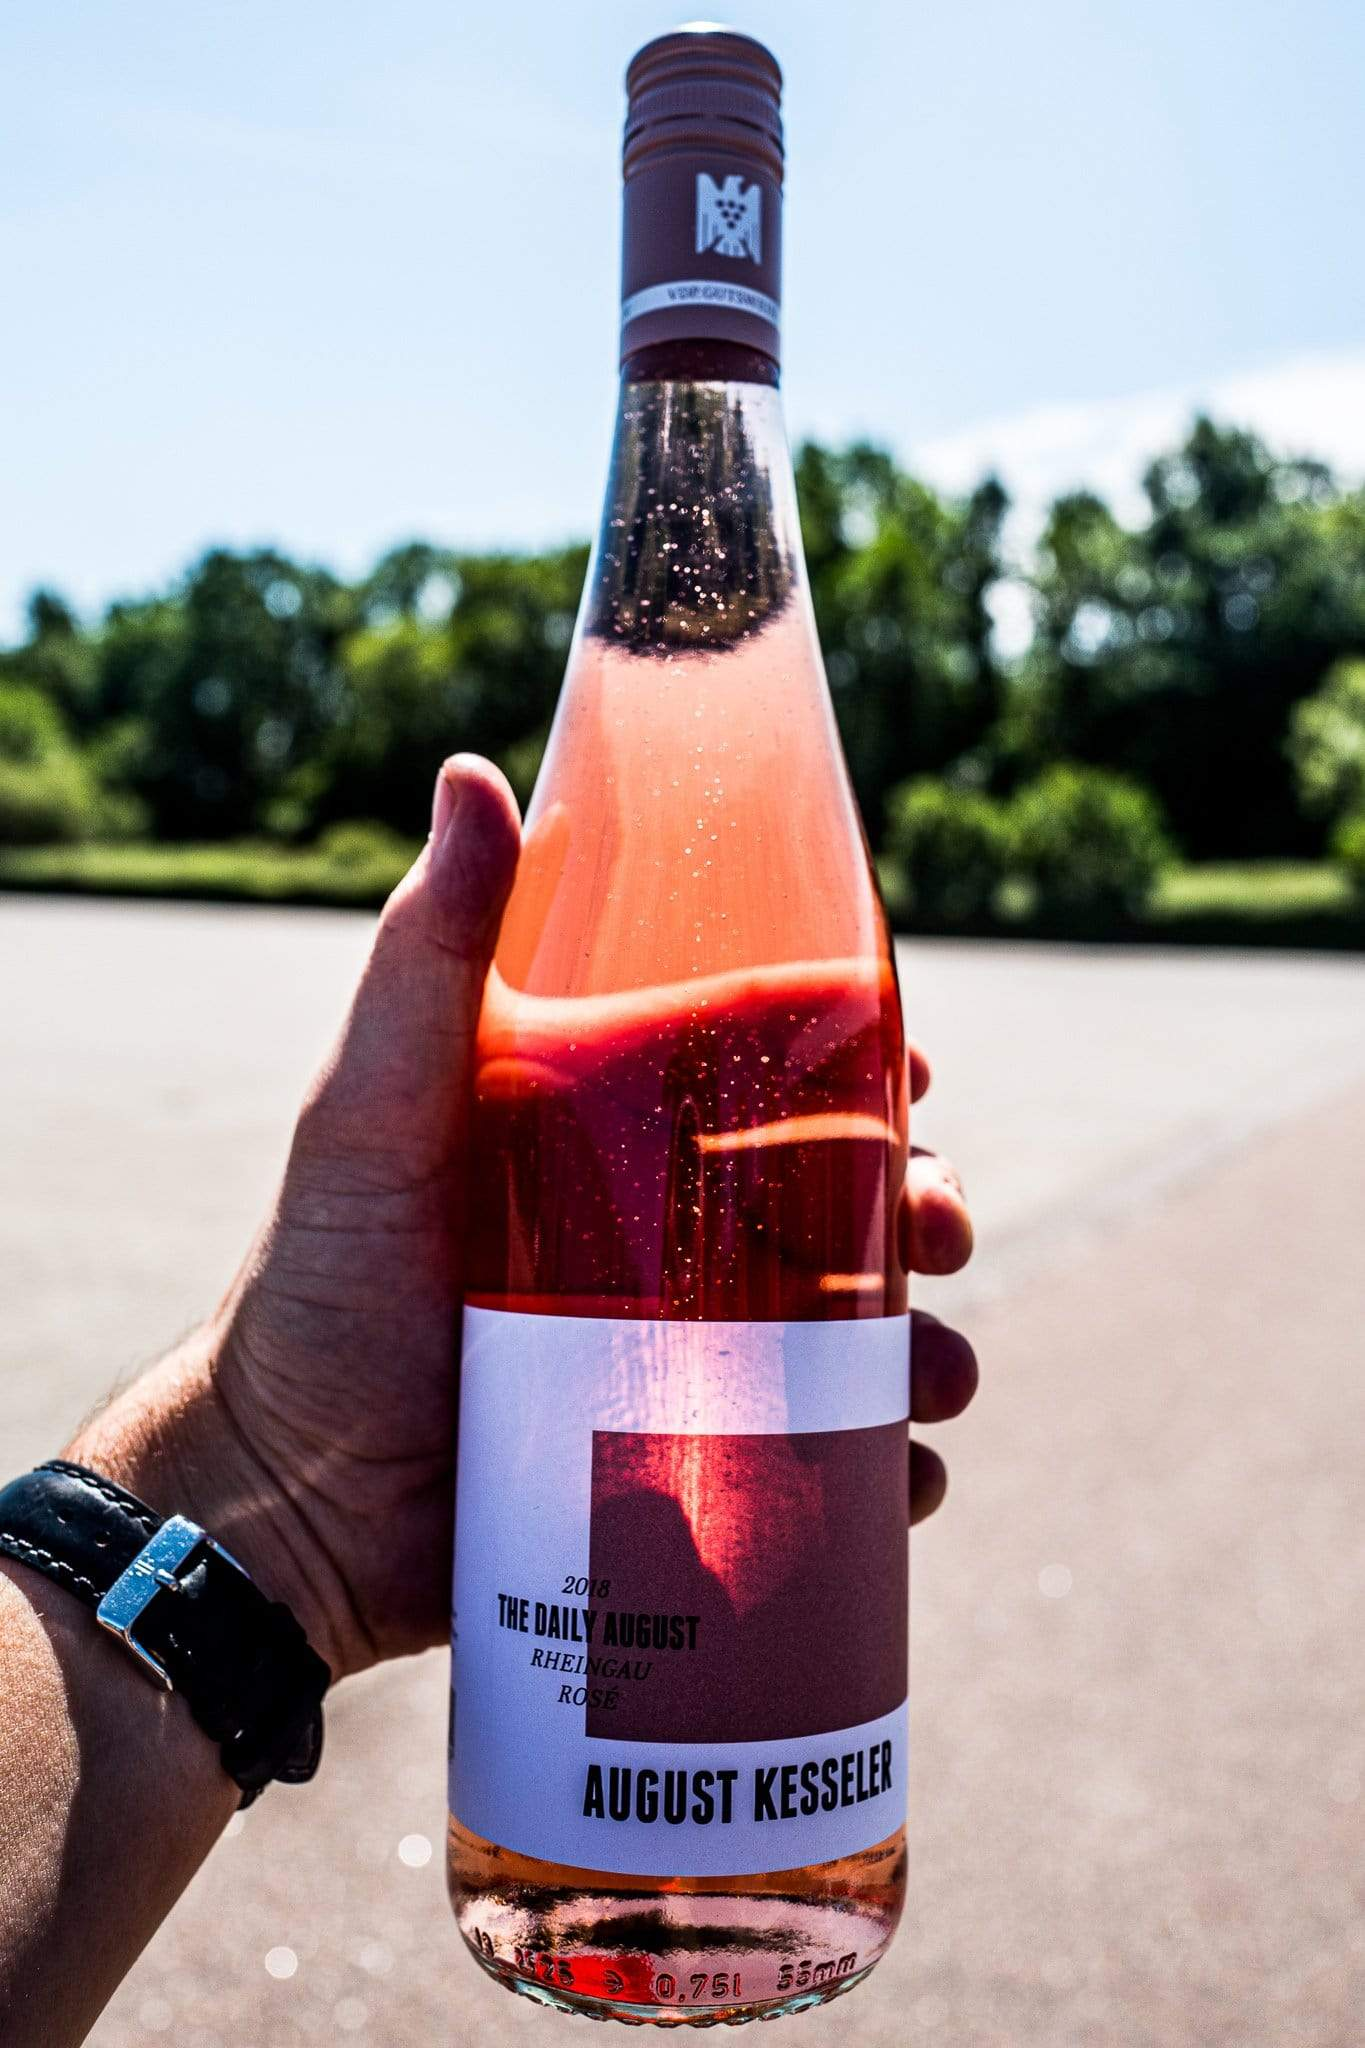 Image of   August Kesseler 2018 The Daily August Rosé Rheingau